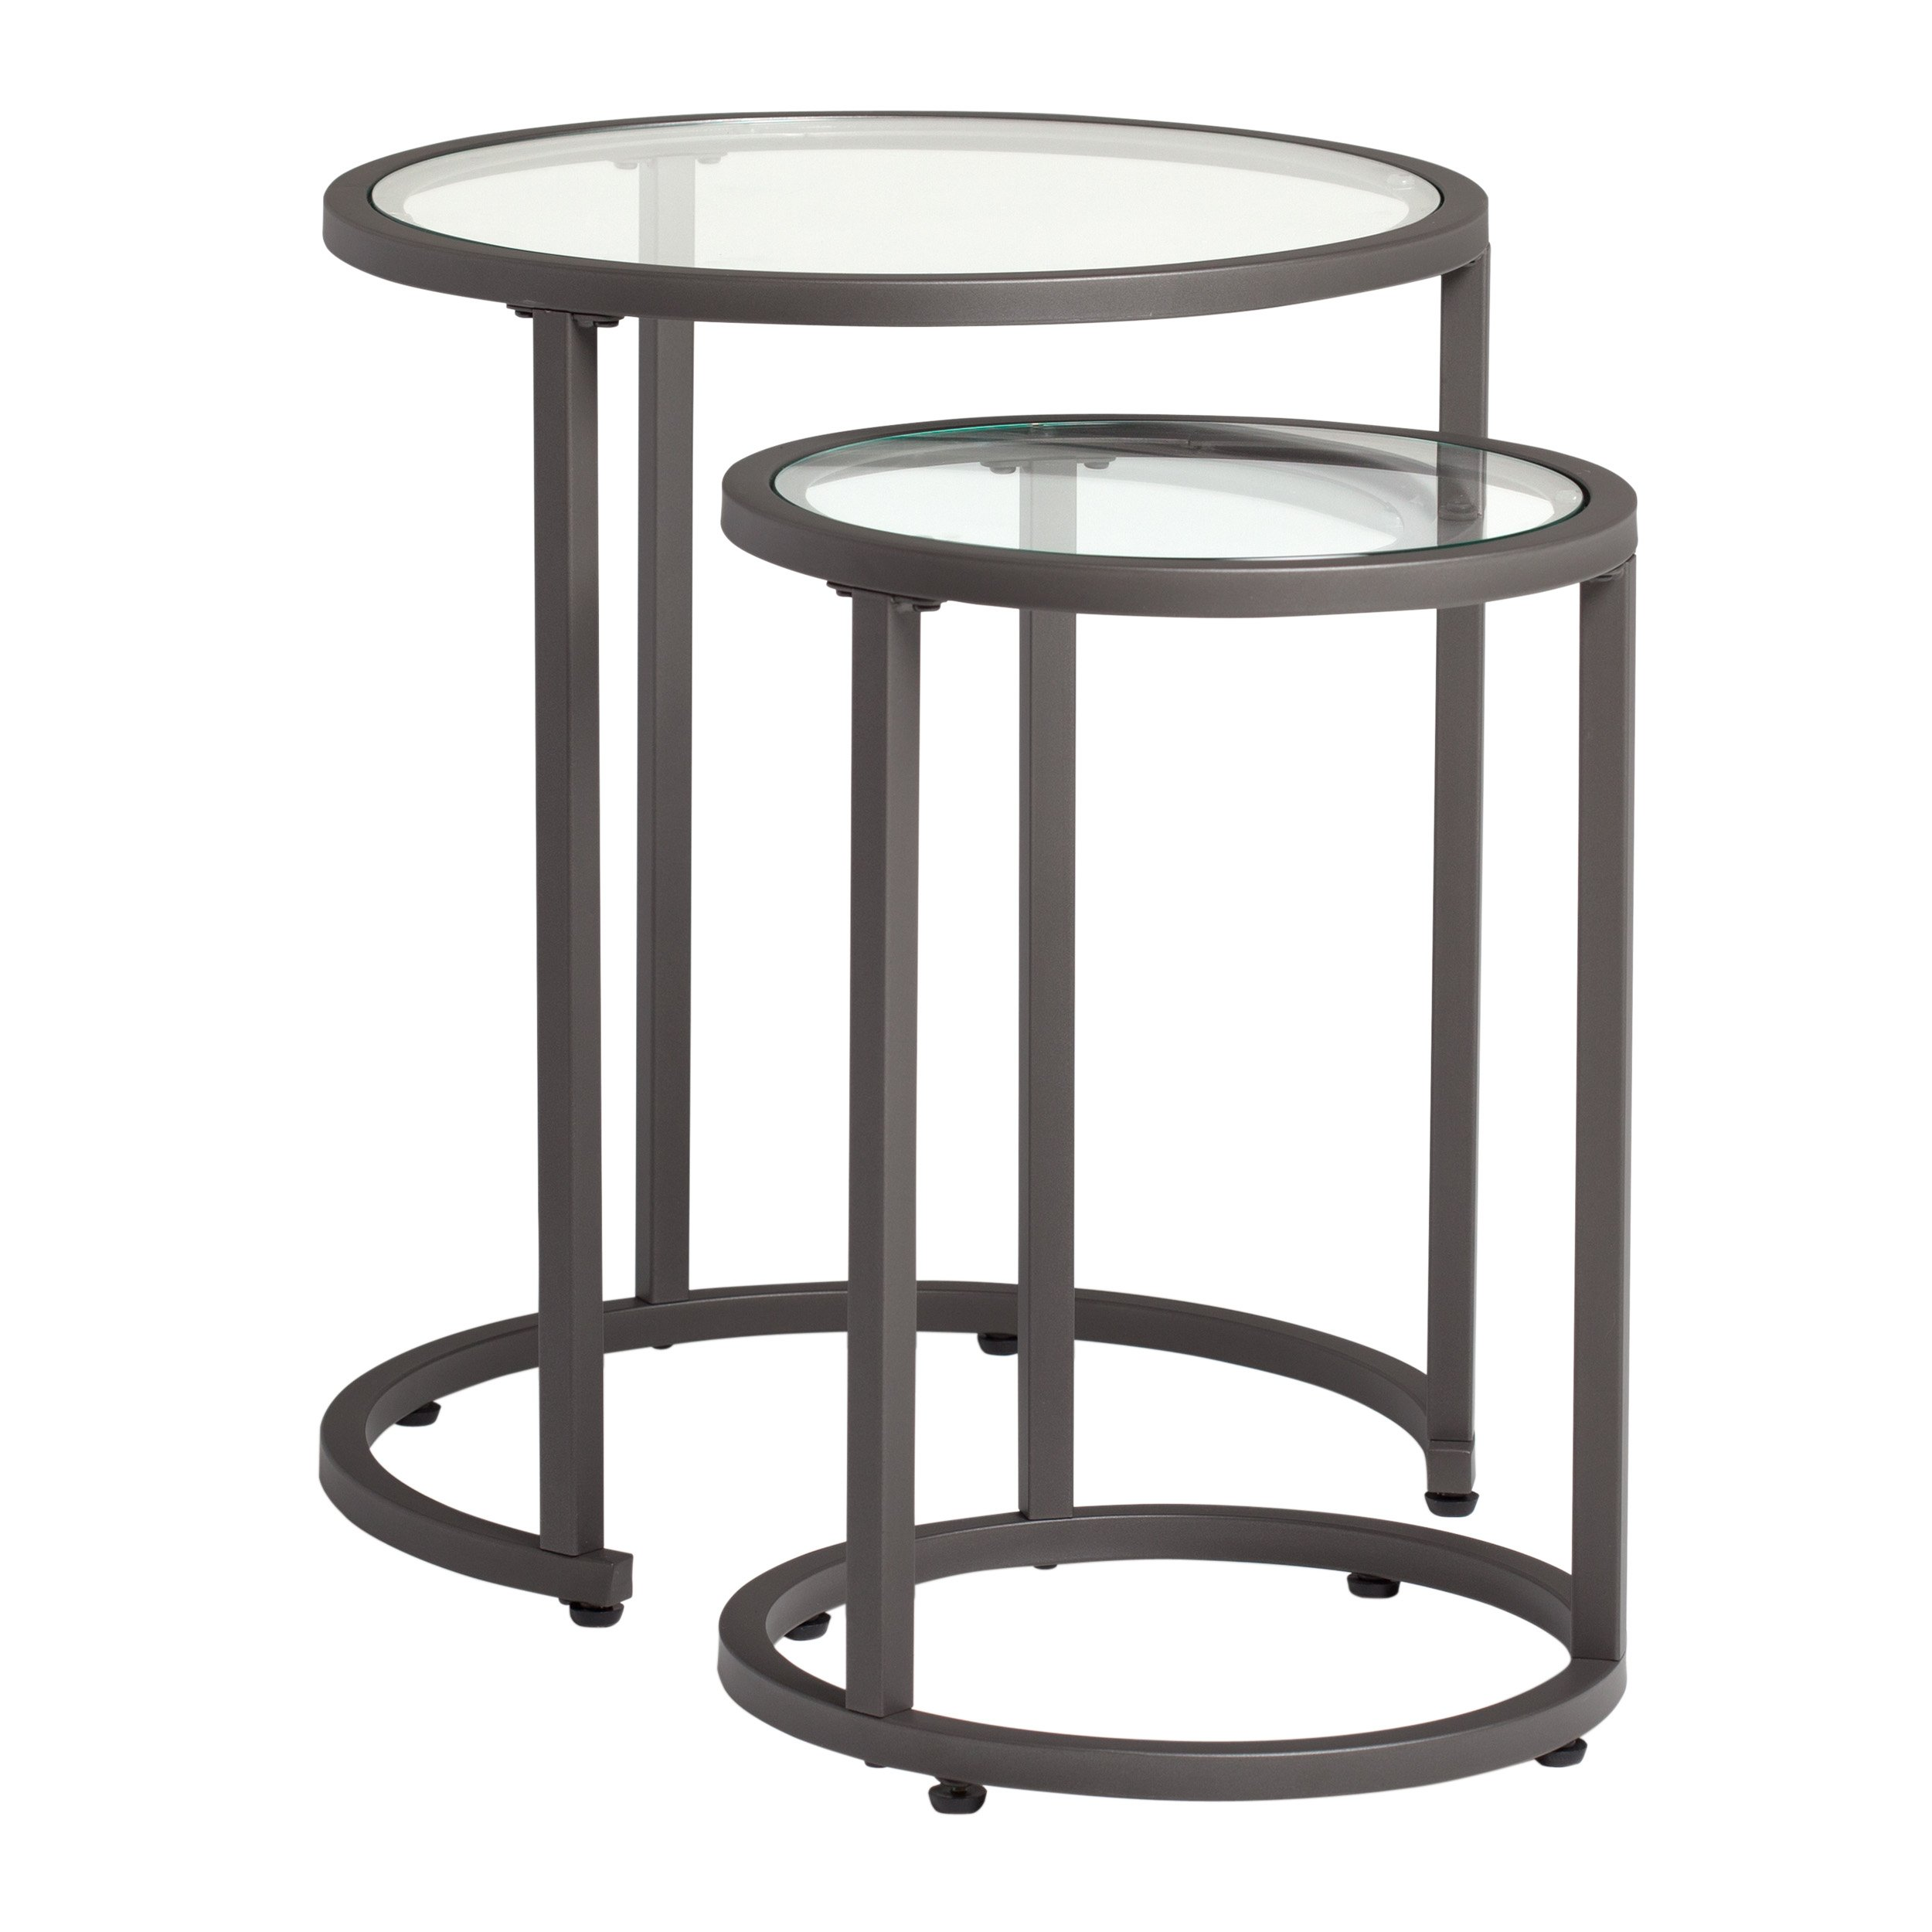 Studio Designs Home Camber Nesting Tables